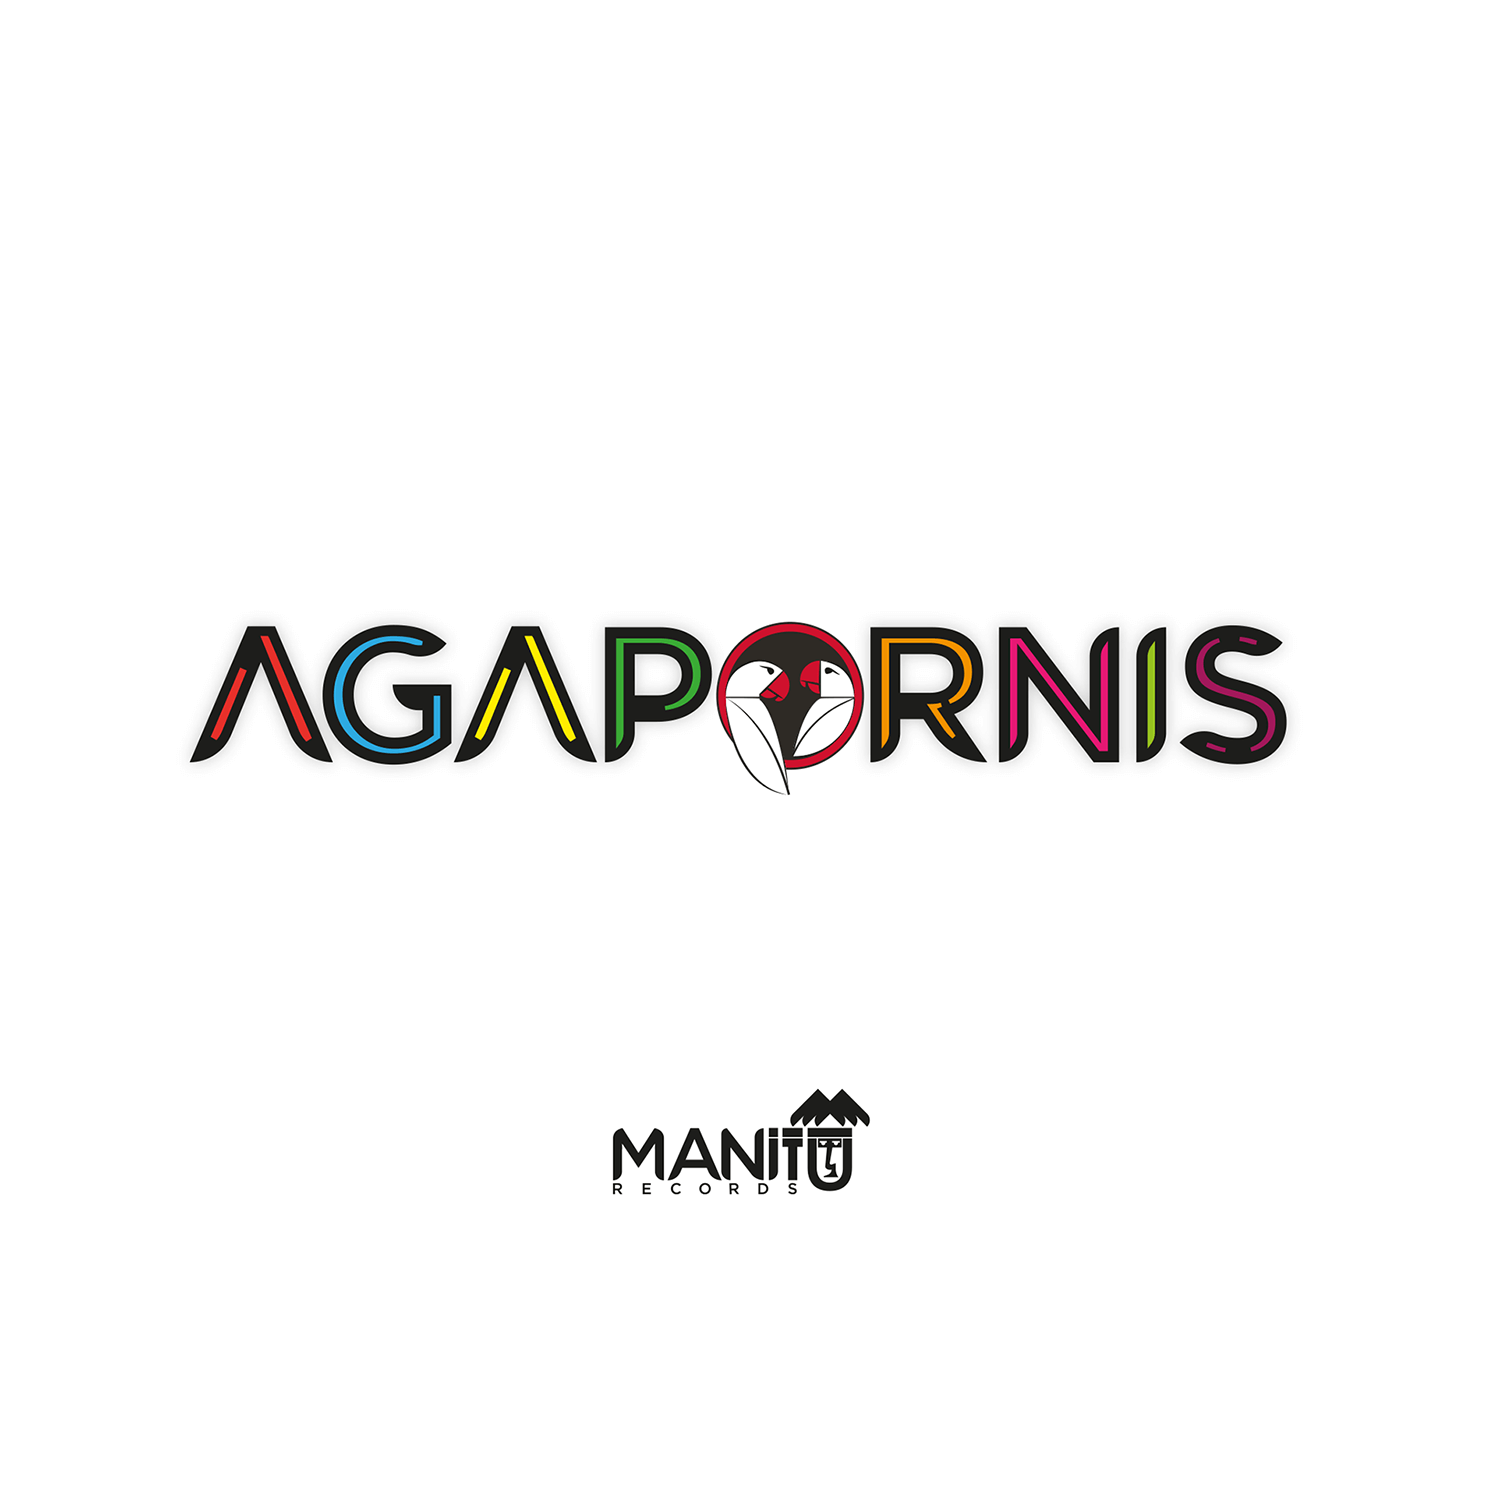 agapornis duo manitu records